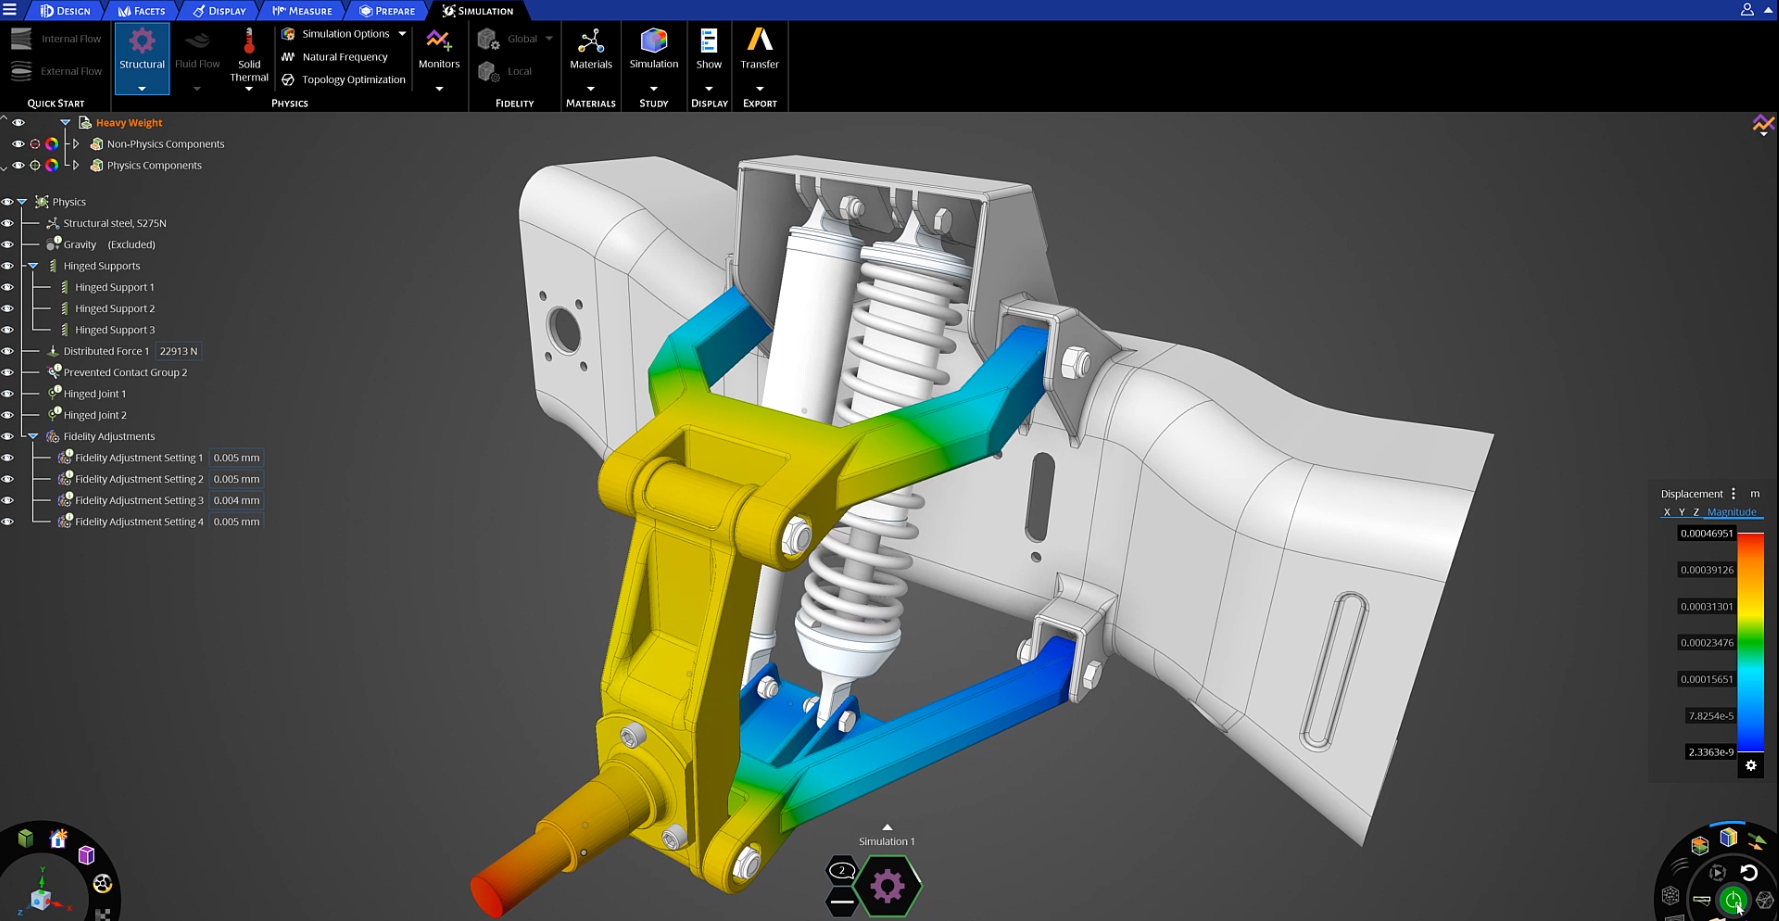 Ansys Discovery video 2 articolo